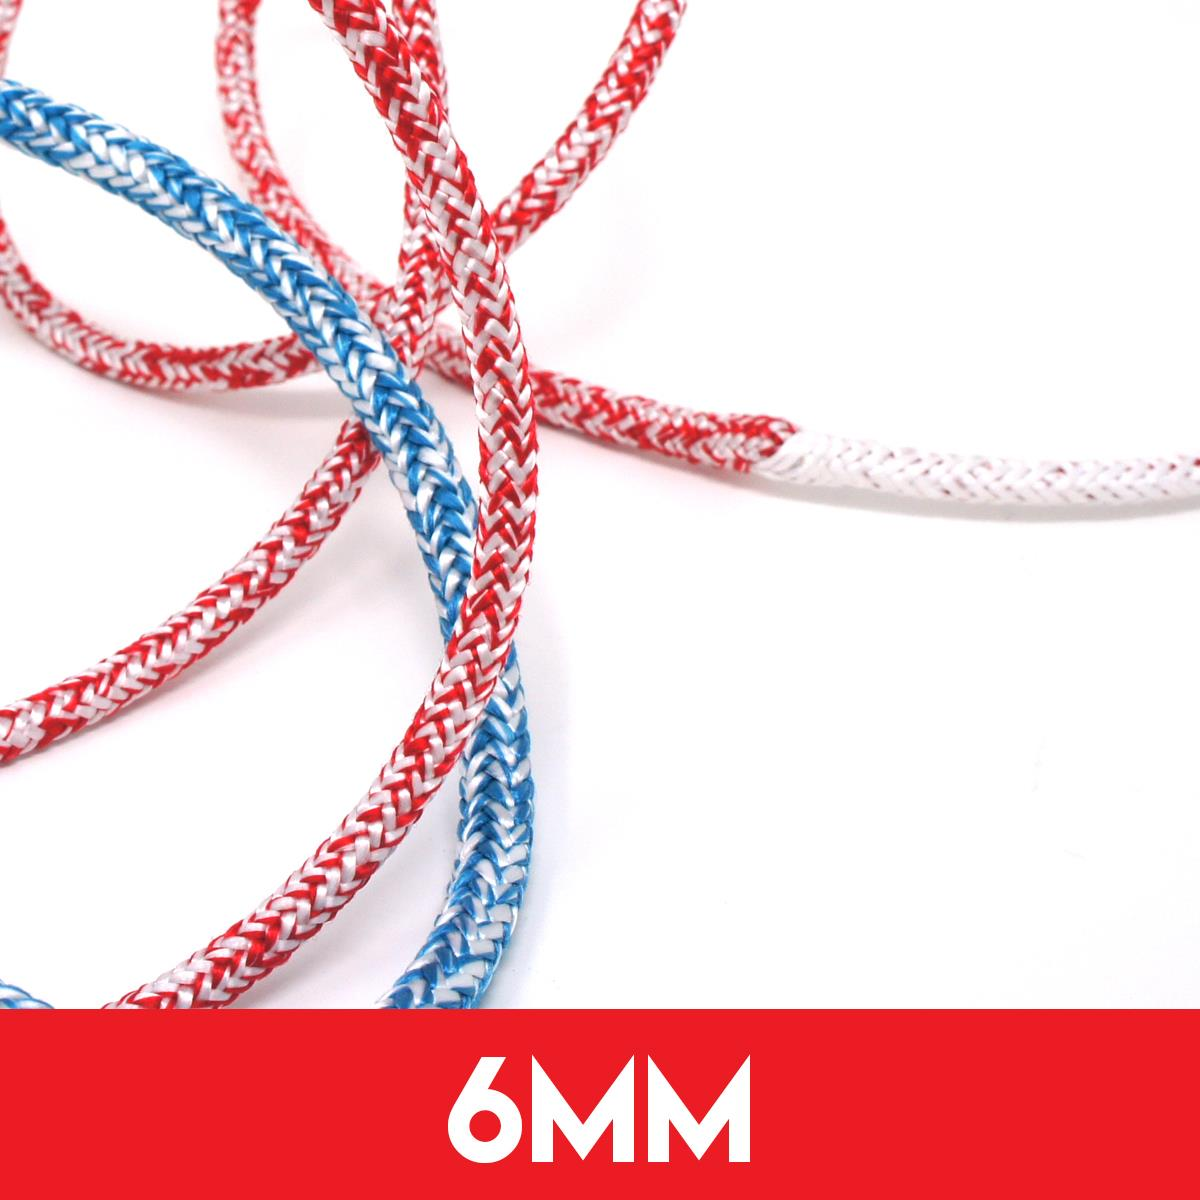 6mm Evolution Dinghy Lite Dyneema Core Rope